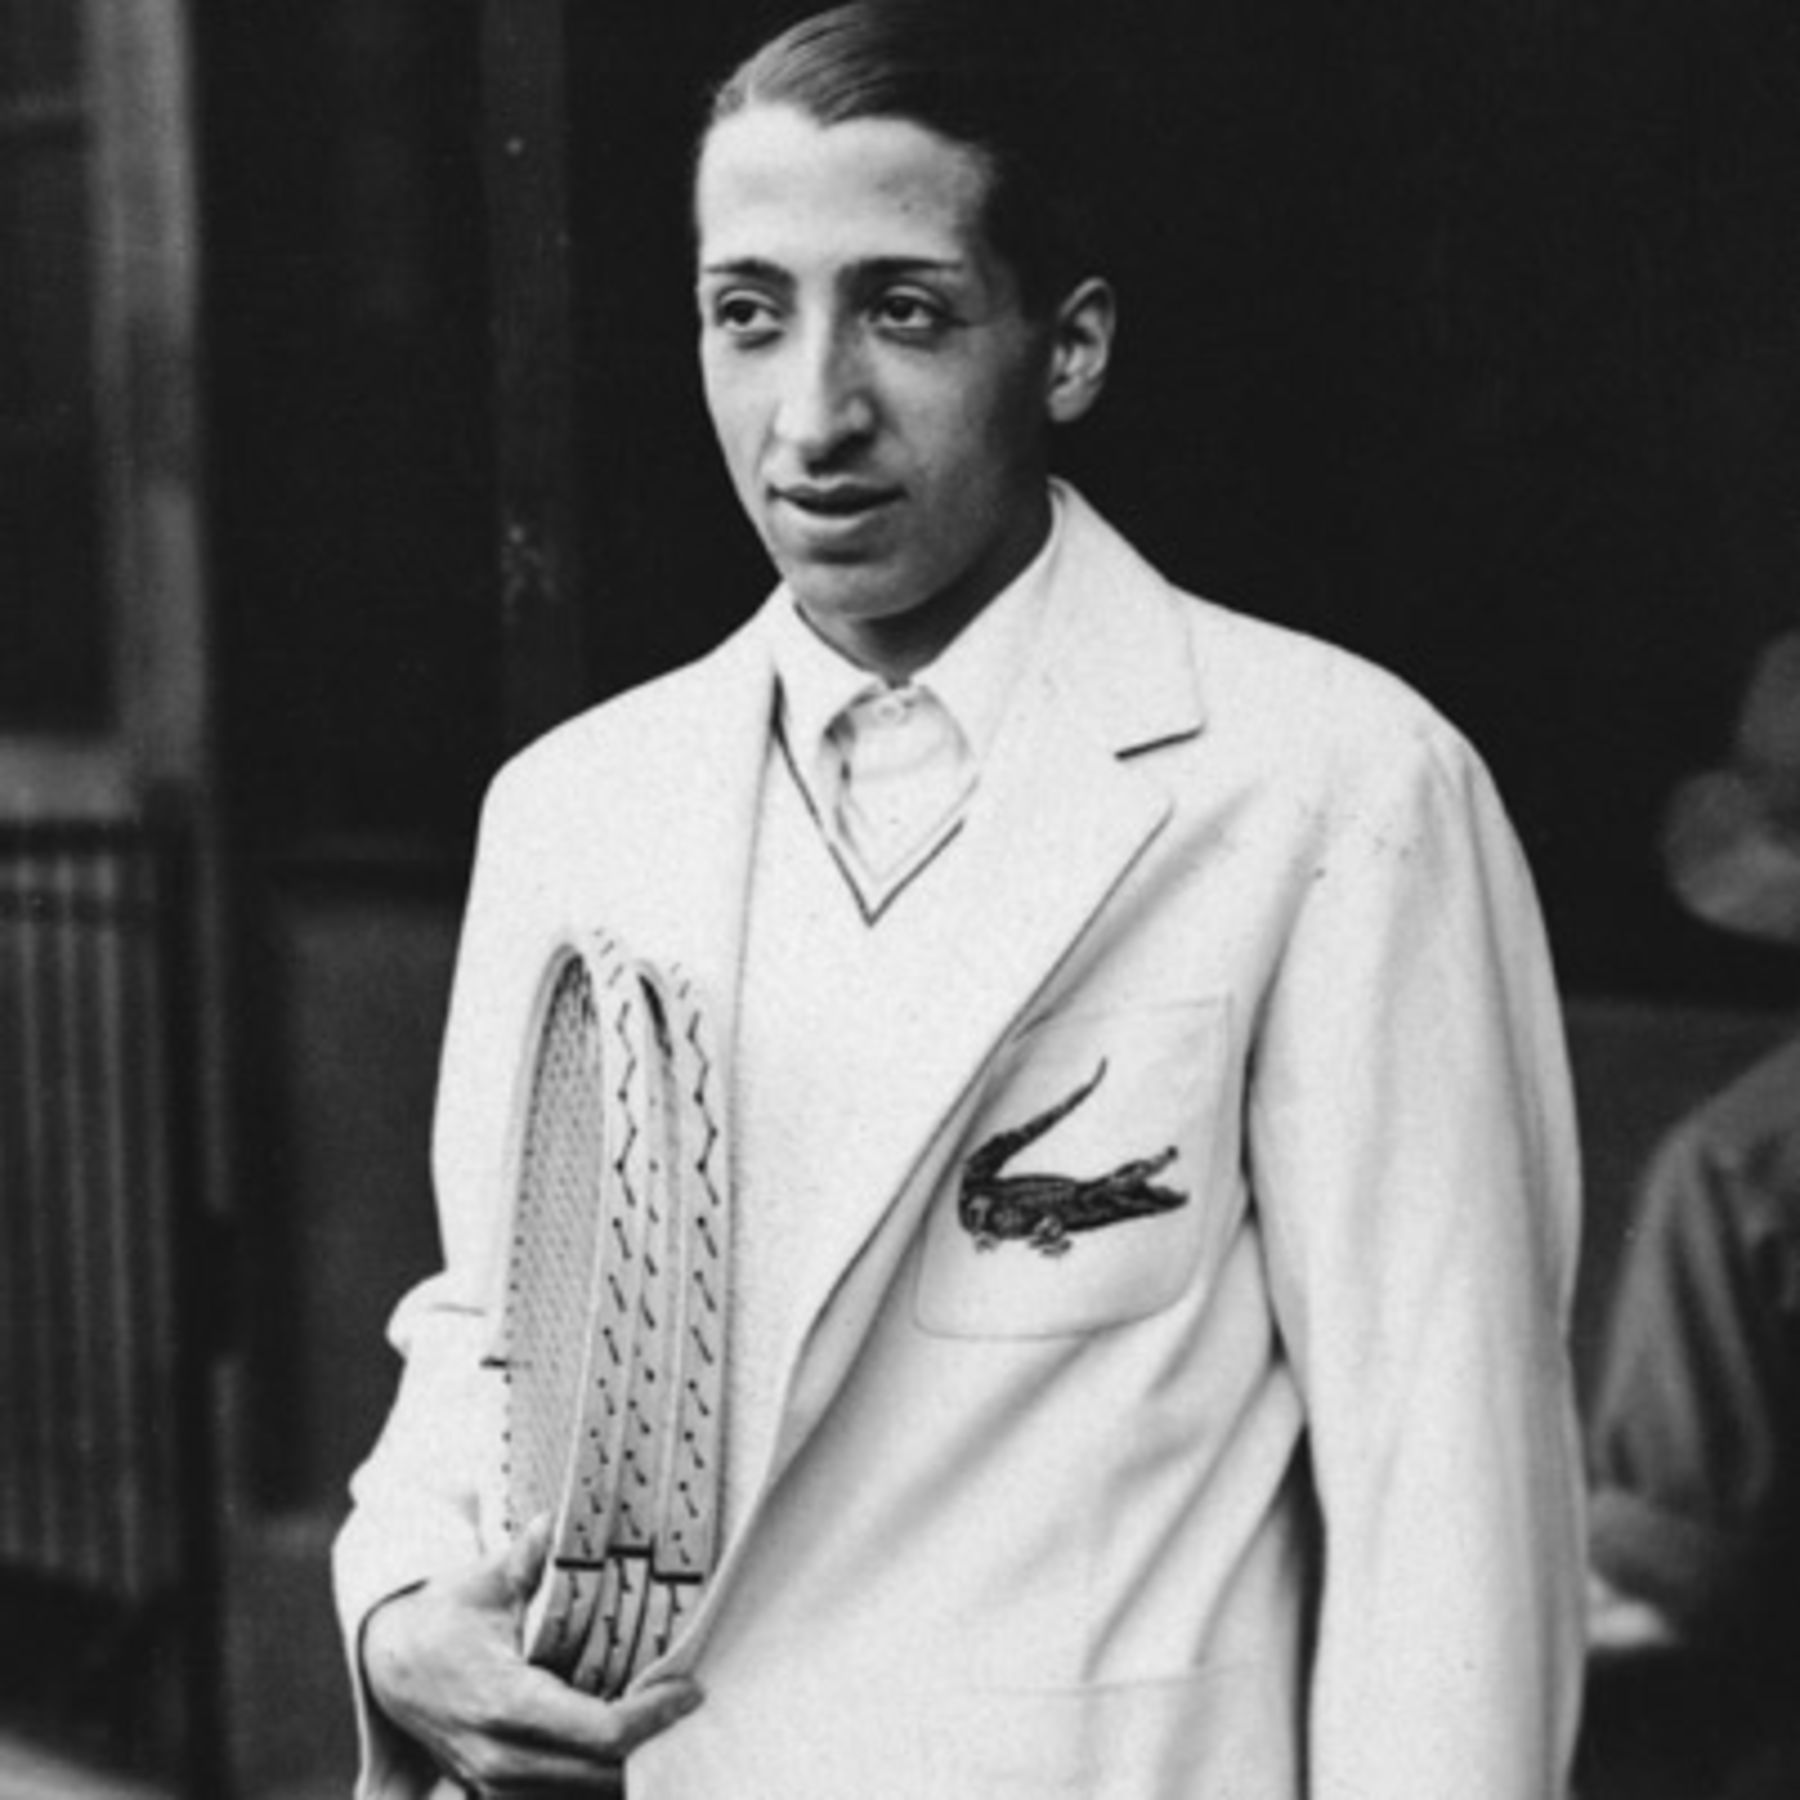 Jean René Lacoste was a world champion tennis player and an ...